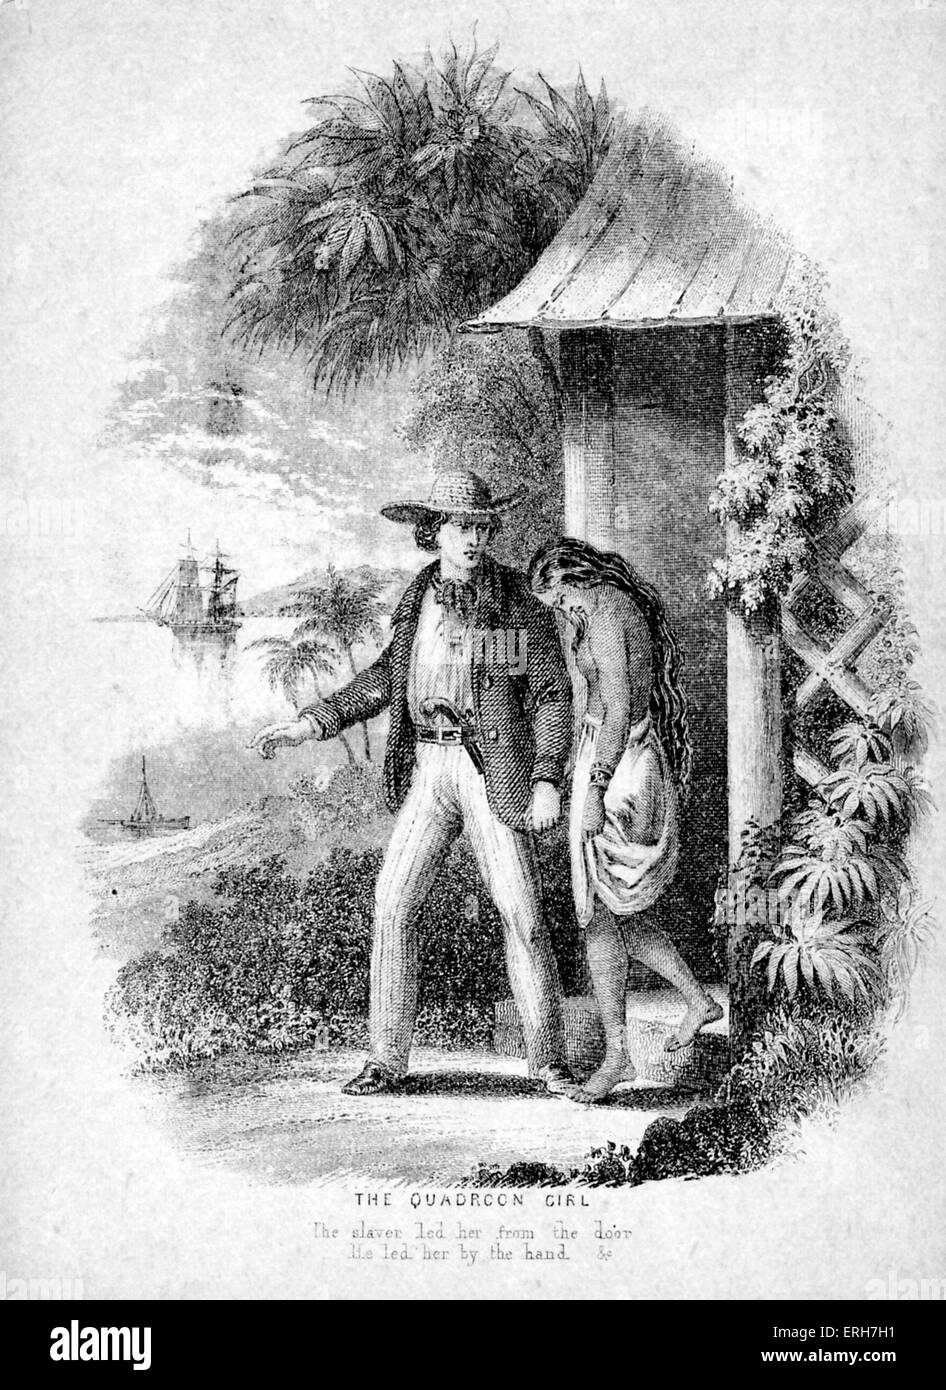 the quadroon girl illustration to epic poem the song of stock photo the quadroon girl illustration to 1885 epic poem the song of hiawatha by henry wadsworth longfellow caption the slaver led her from the